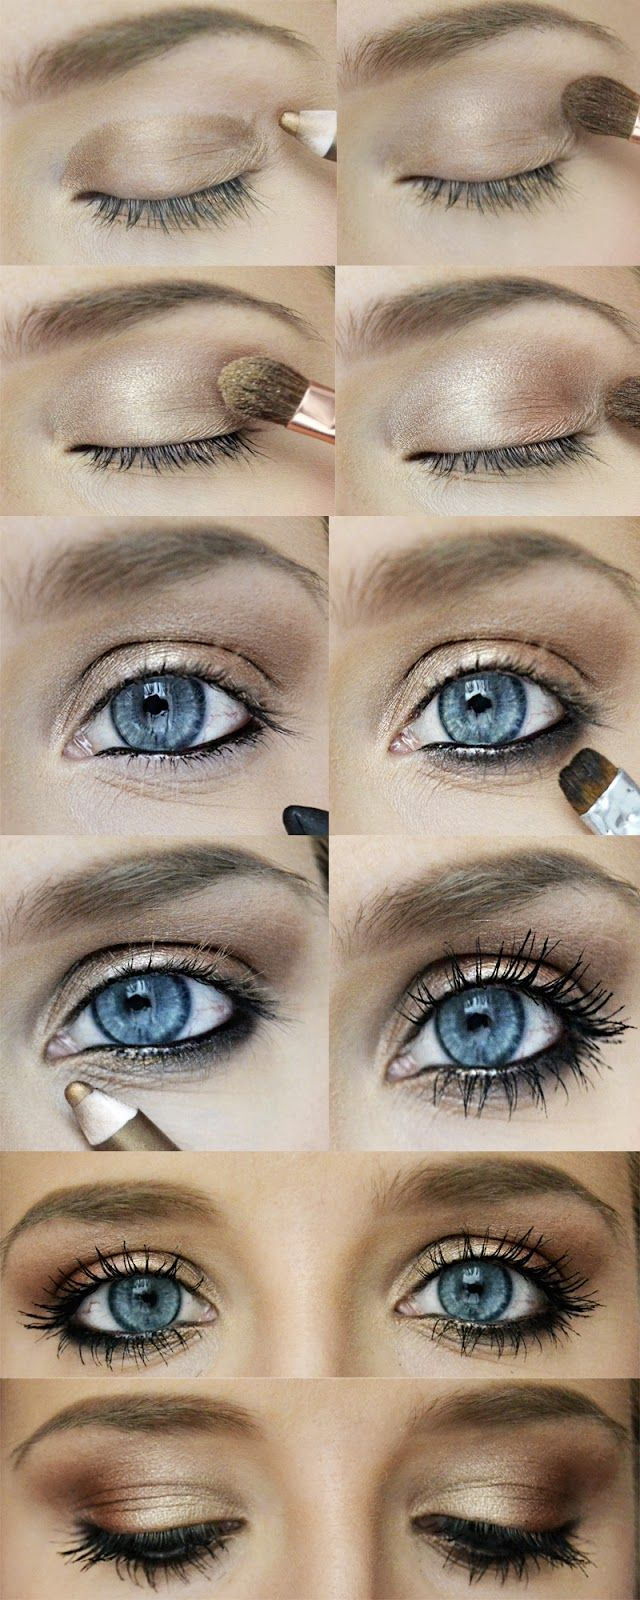 Goldbronze Eye Makeup Never Thought Of Doing Eyeliner Only On The